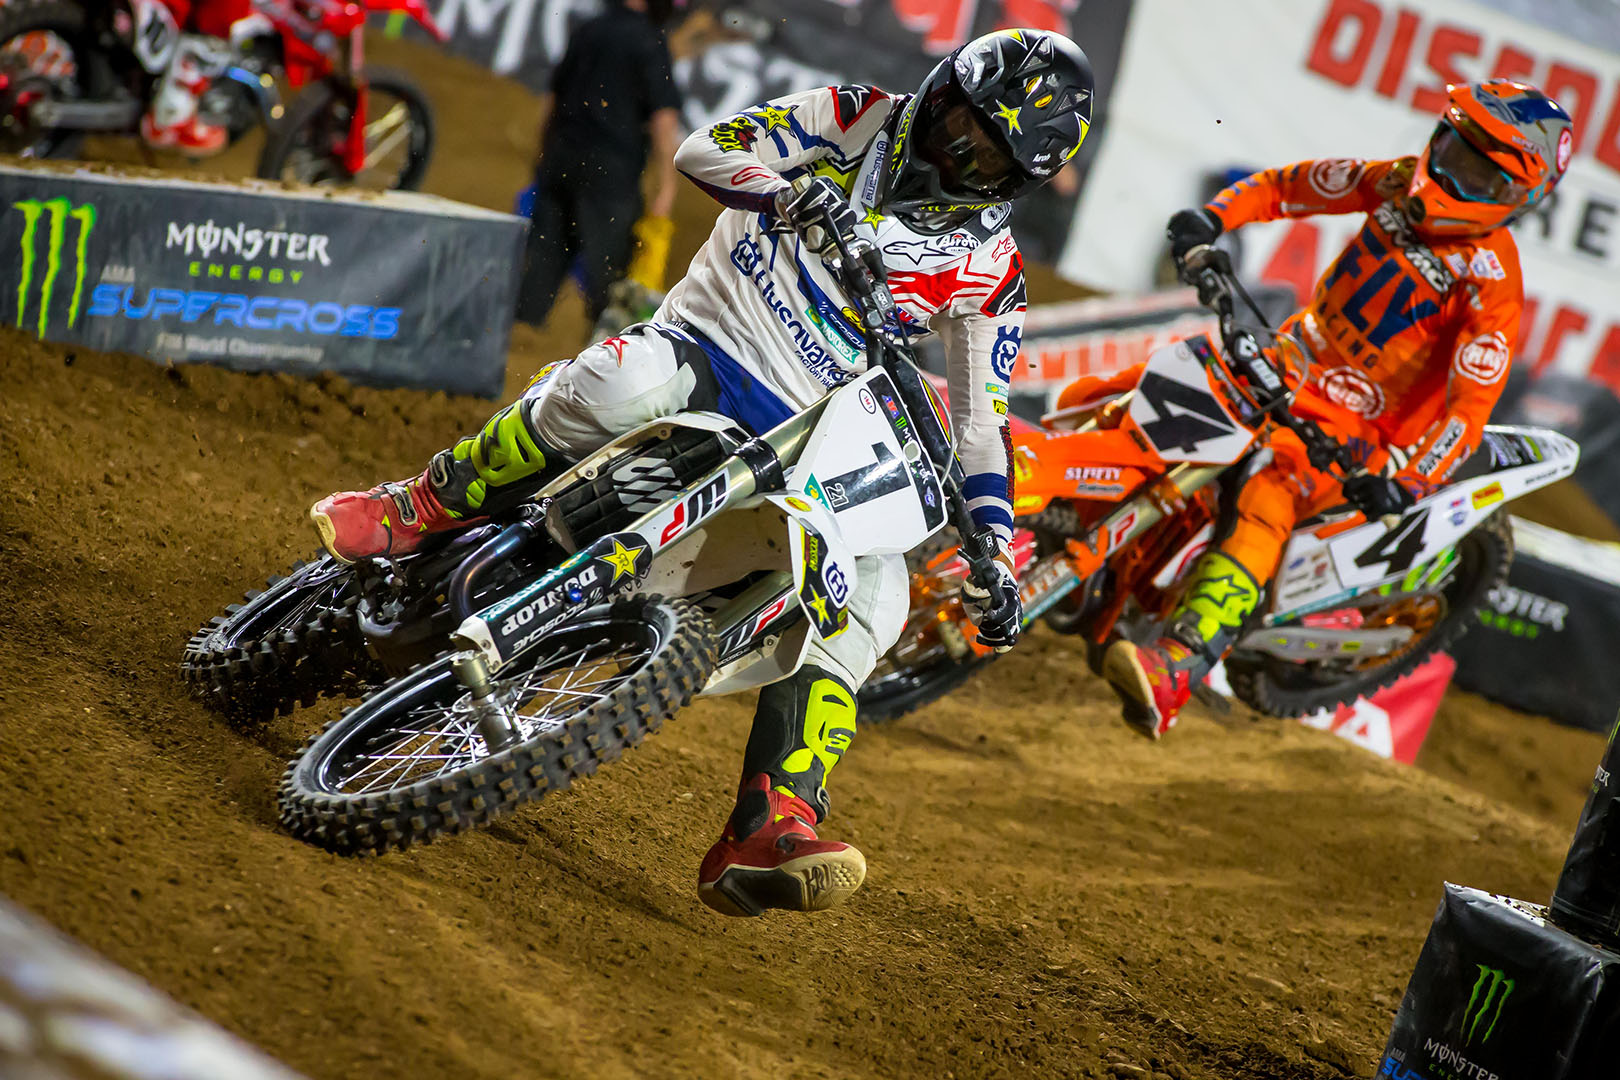 2019 Glendale Supercross Results and Coverage - Jason Anderson and Blake Baggett